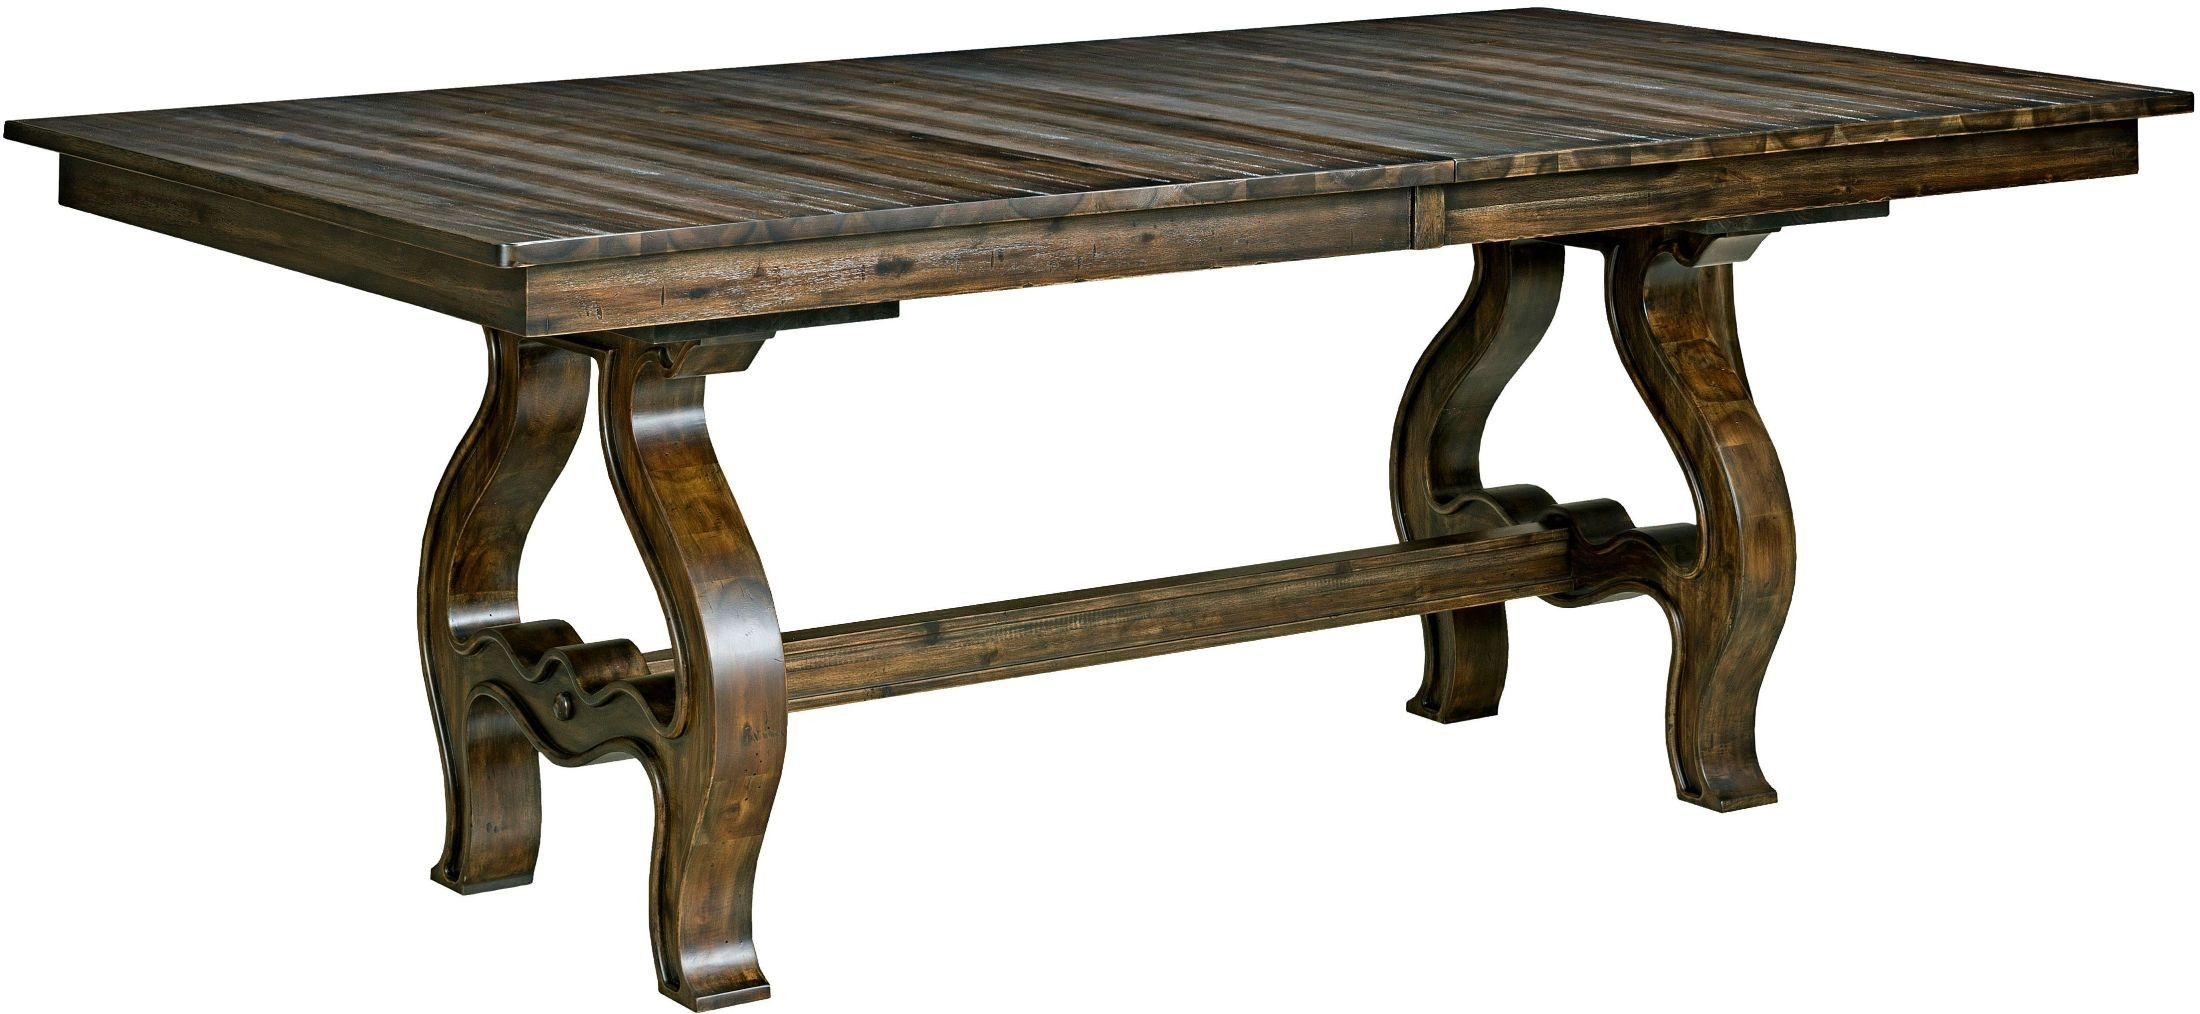 Wildfire Ember Extendable Trestle Dining Table From Kincaid 86 056p